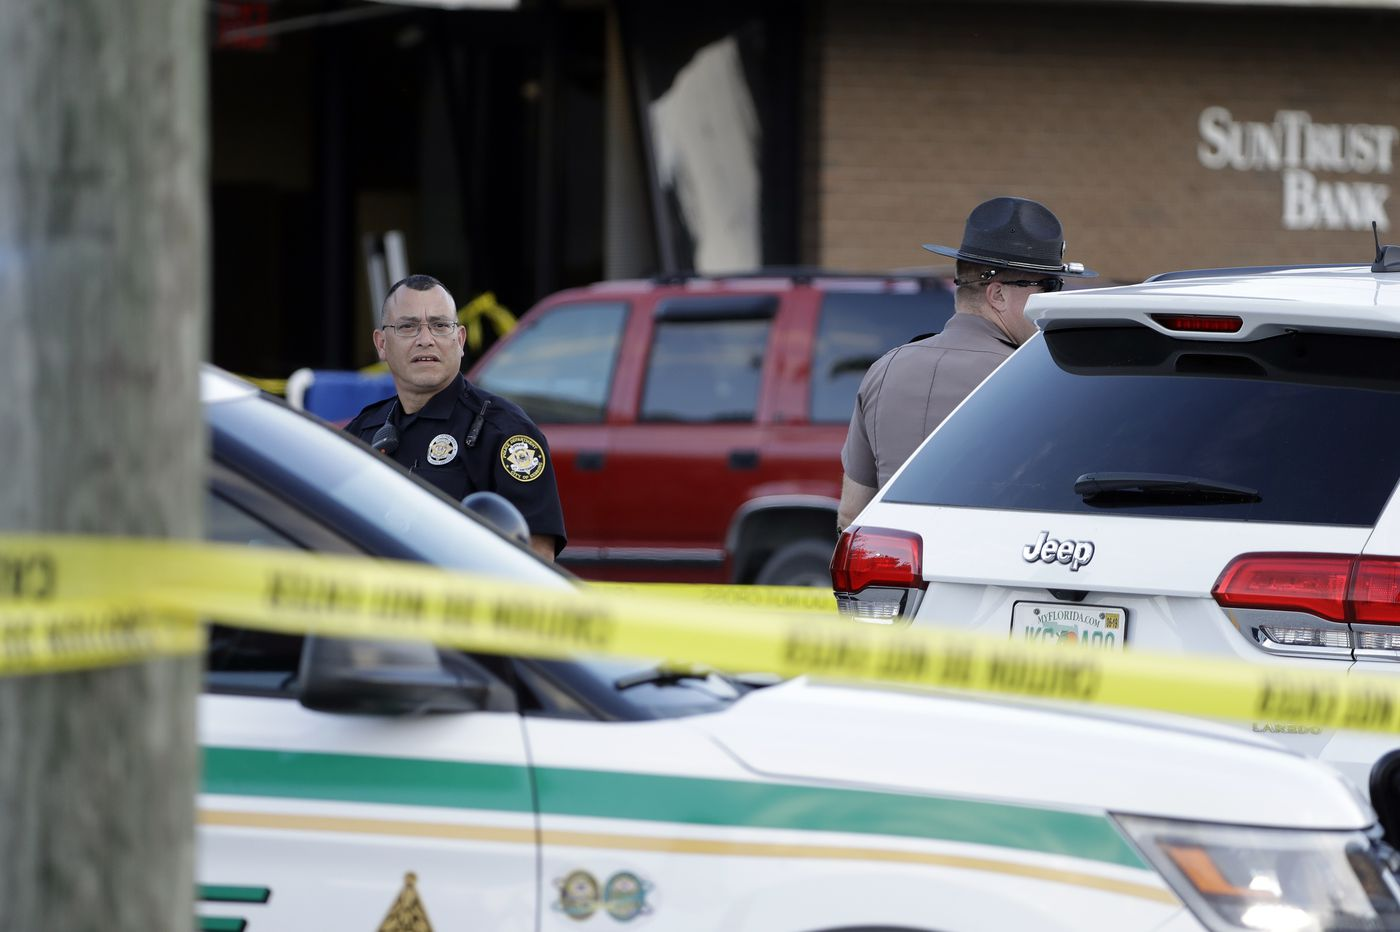 A domestic terrorist slaughtered 5 women in a Florida bank and hardly anyone noticed | Will Bunch